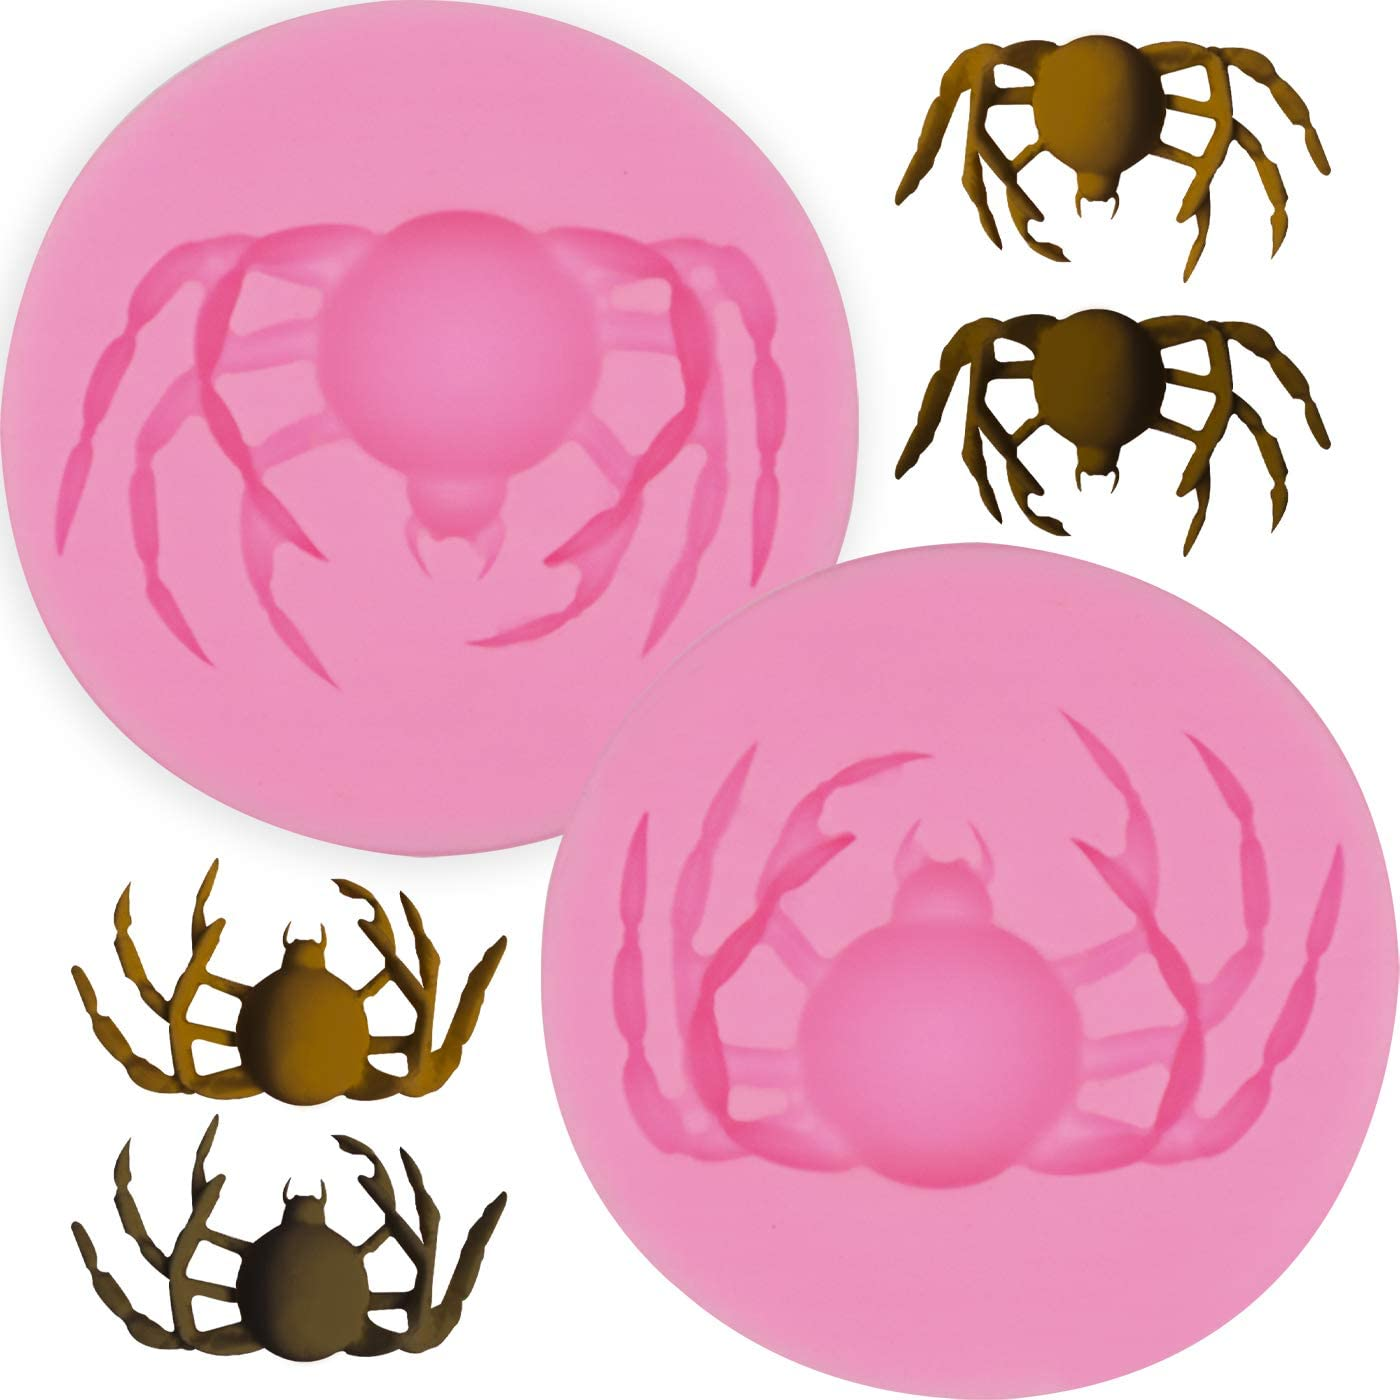 Hengke 2Pcs Spider Shape Silicone Molds For Halloween Party,Scary Themed Party,Pudding,Pan Muffin,Impression Mats Baroque Fondant,Chocolate,Cookie Pastry Pies,Cake Cup,Cake Decoration,Handmade Soap